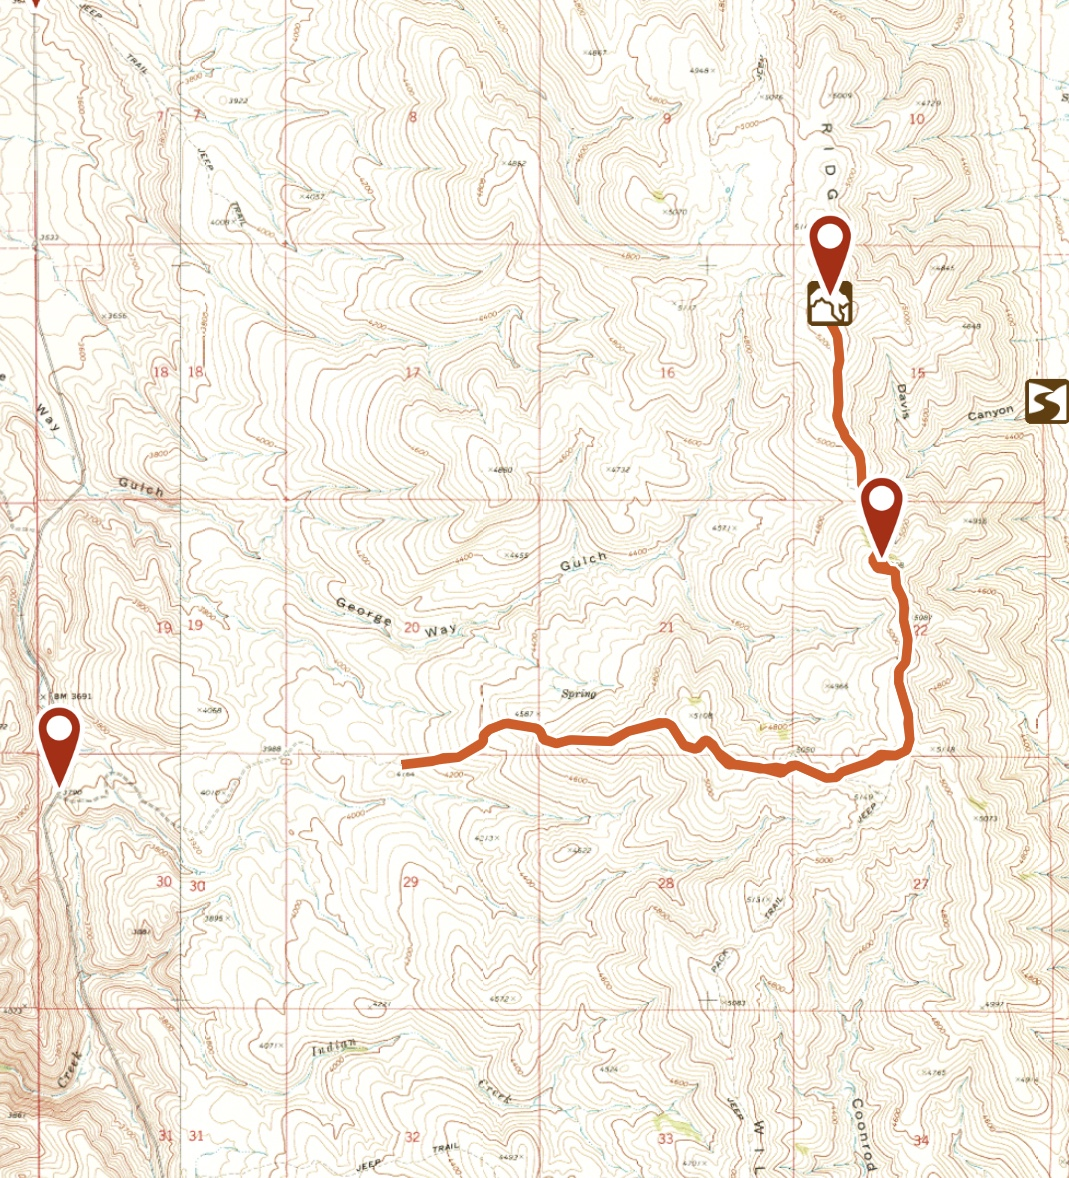 This is my GPS track for the hike. From my parking spot it was 8.4 miles round trip with 1,800 feet of gain. I would not recommend driving any farther than my starting point nor going as far as I did unless you have a 4WD with exceptional off road tires.